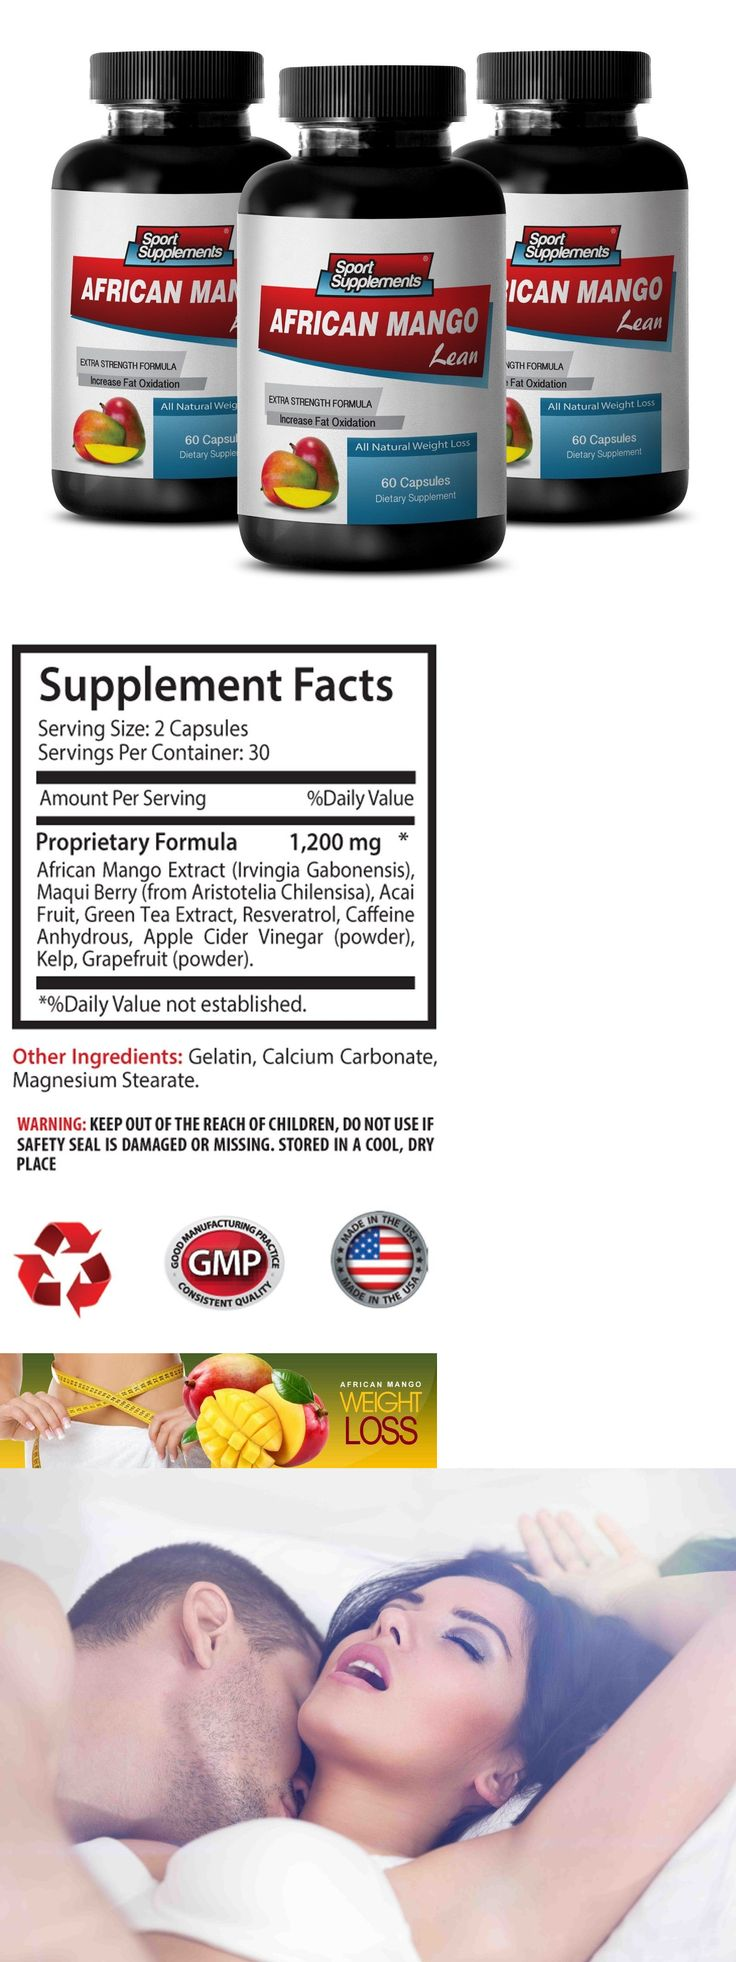 Appetite Control Suppressants: Fat Burner Capsules - African Mango Complex 1200Mg - Caffeine Anhydrous 3B -> BUY IT NOW ONLY: $33.95 on eBay!